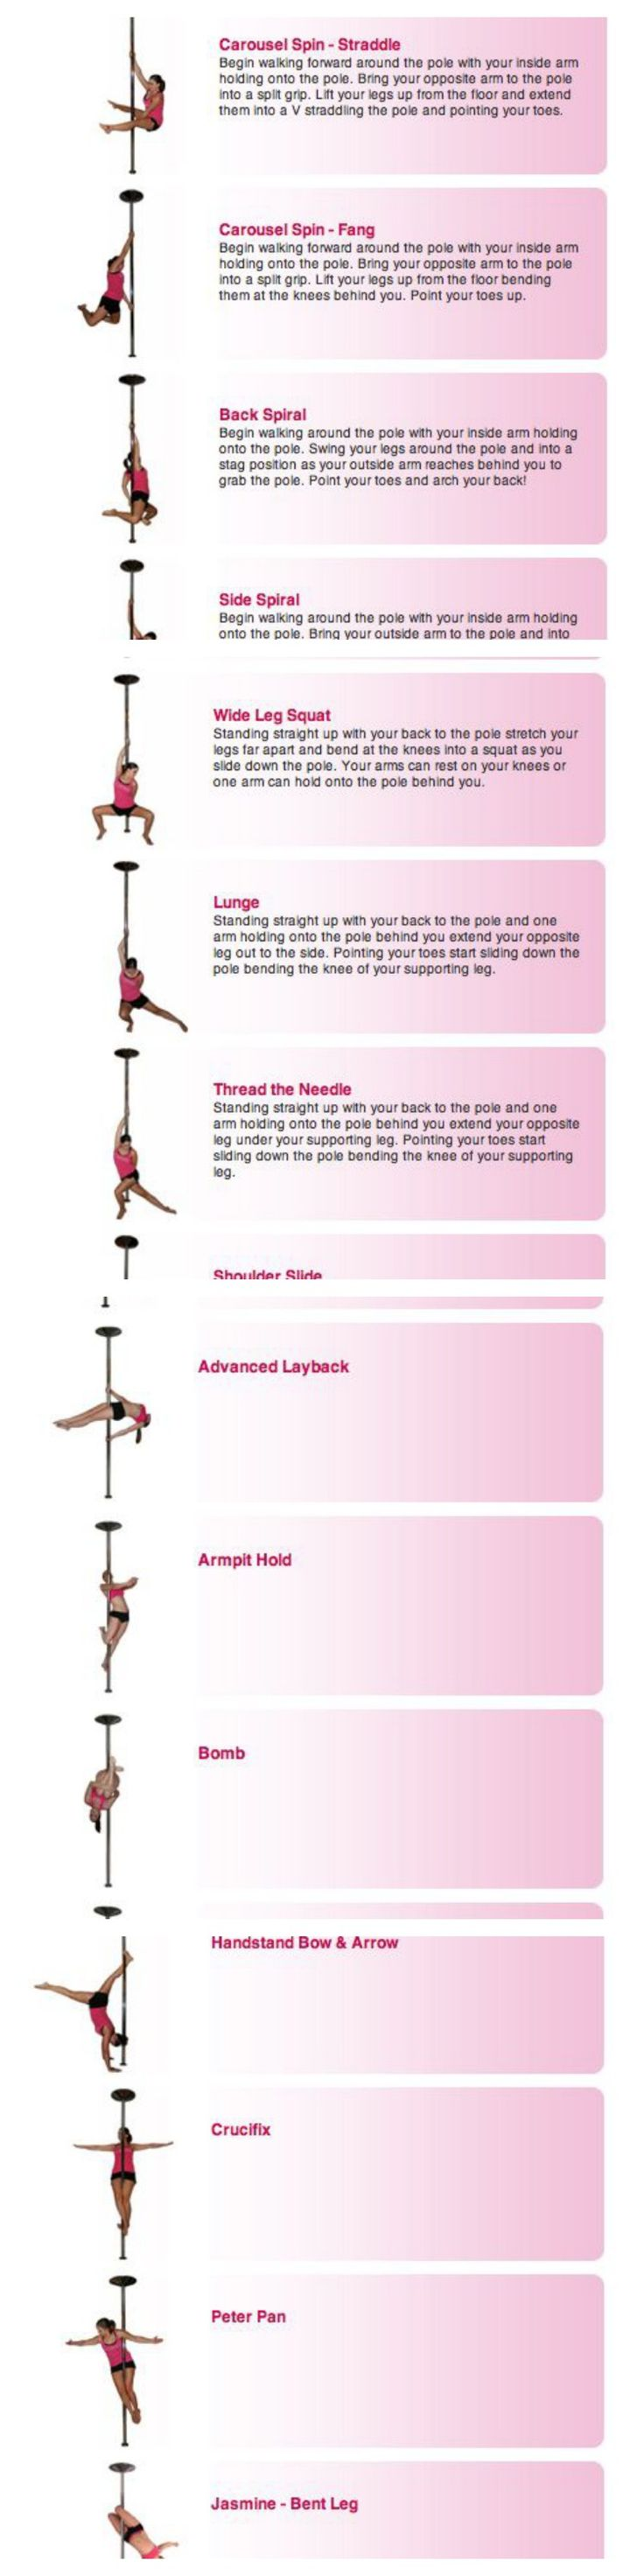 Pole Dancing Moves : Beginner, Intermediate and advanced Moves (Spins, Poses, Floor-work, Slides and Climb). ........ Pole dancing is a great form of exercise and can be used as both an aerobic and anaerobic workout. Jasmine Grace, pole dancing professional, put together this tutorials to educate self-taught pole dancing ....... :)